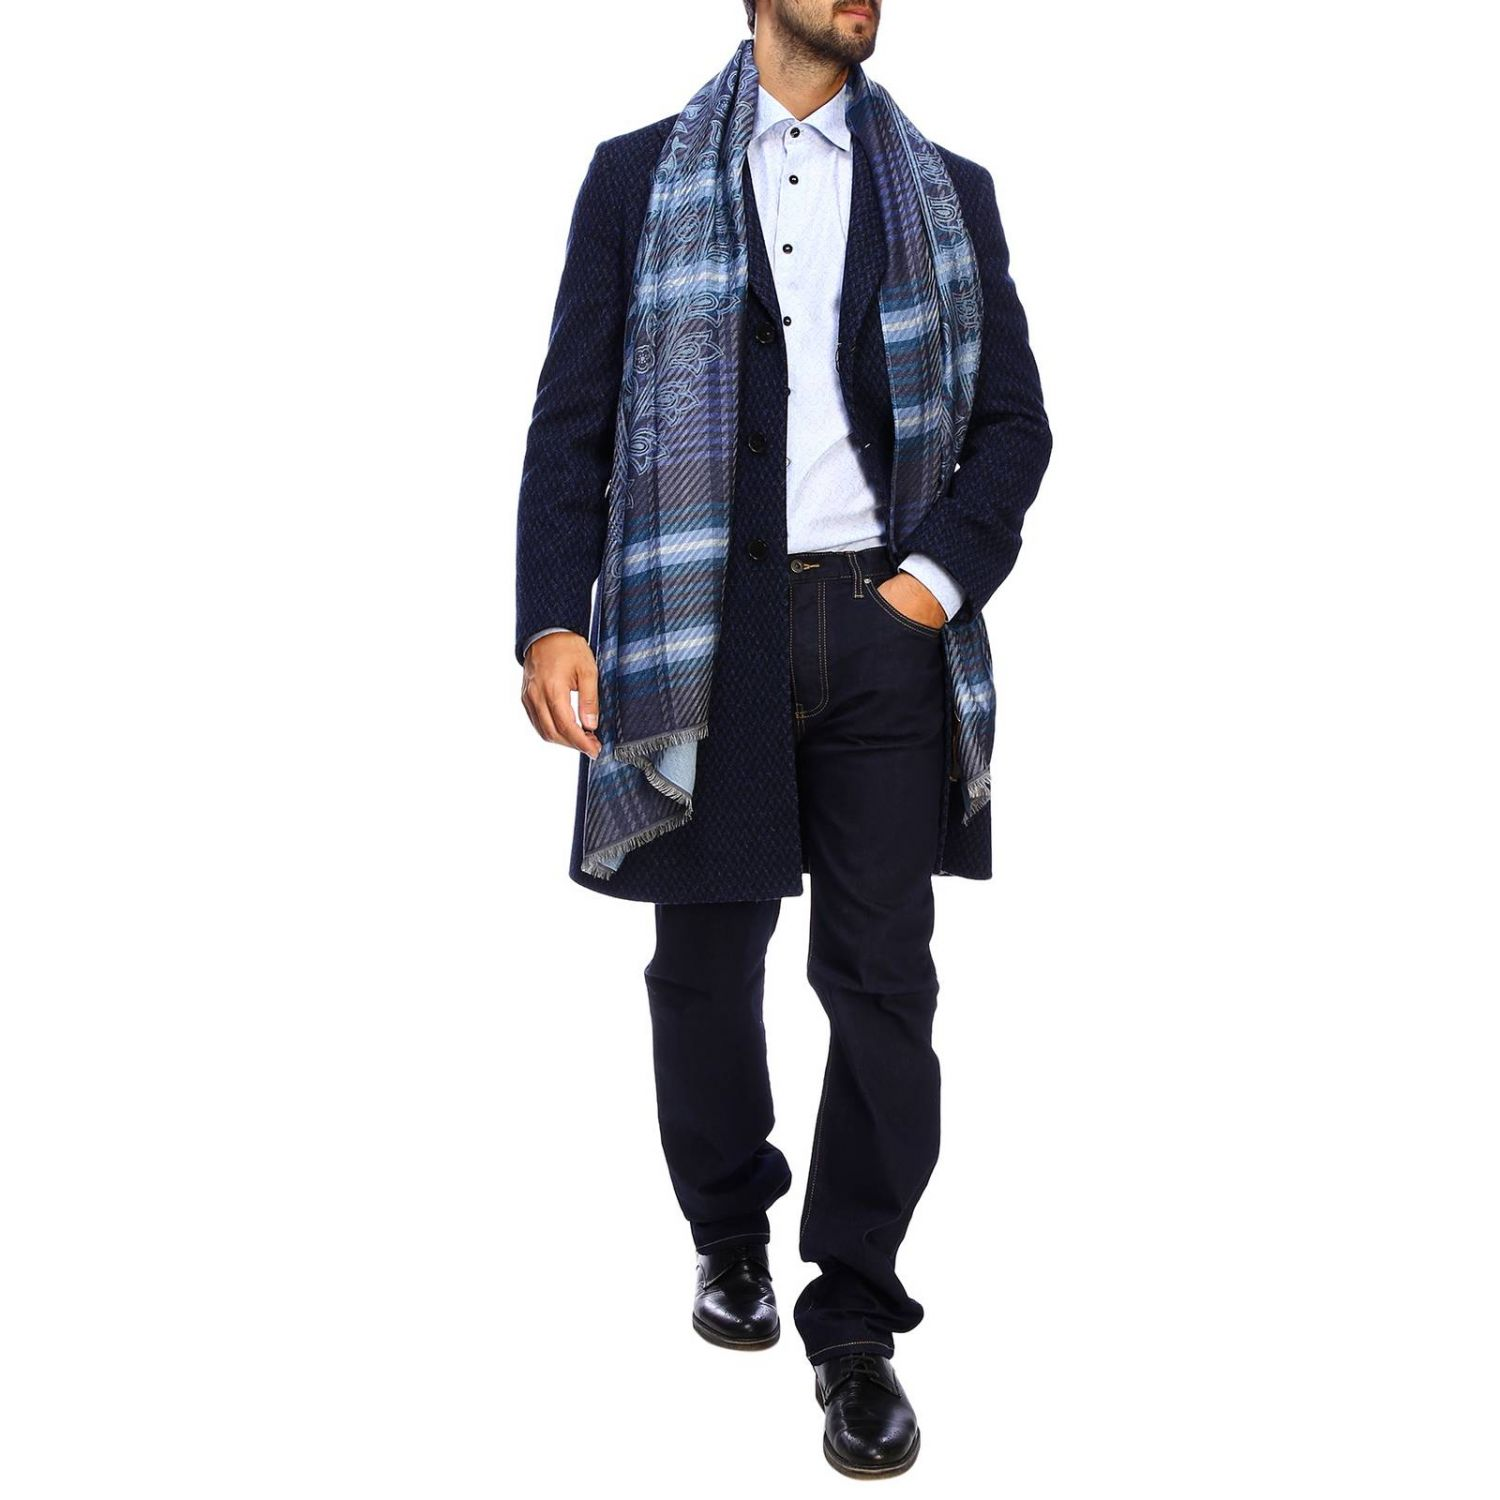 Etro slim micro patterned jacquard shirt with Italian collar gnawed blue 2